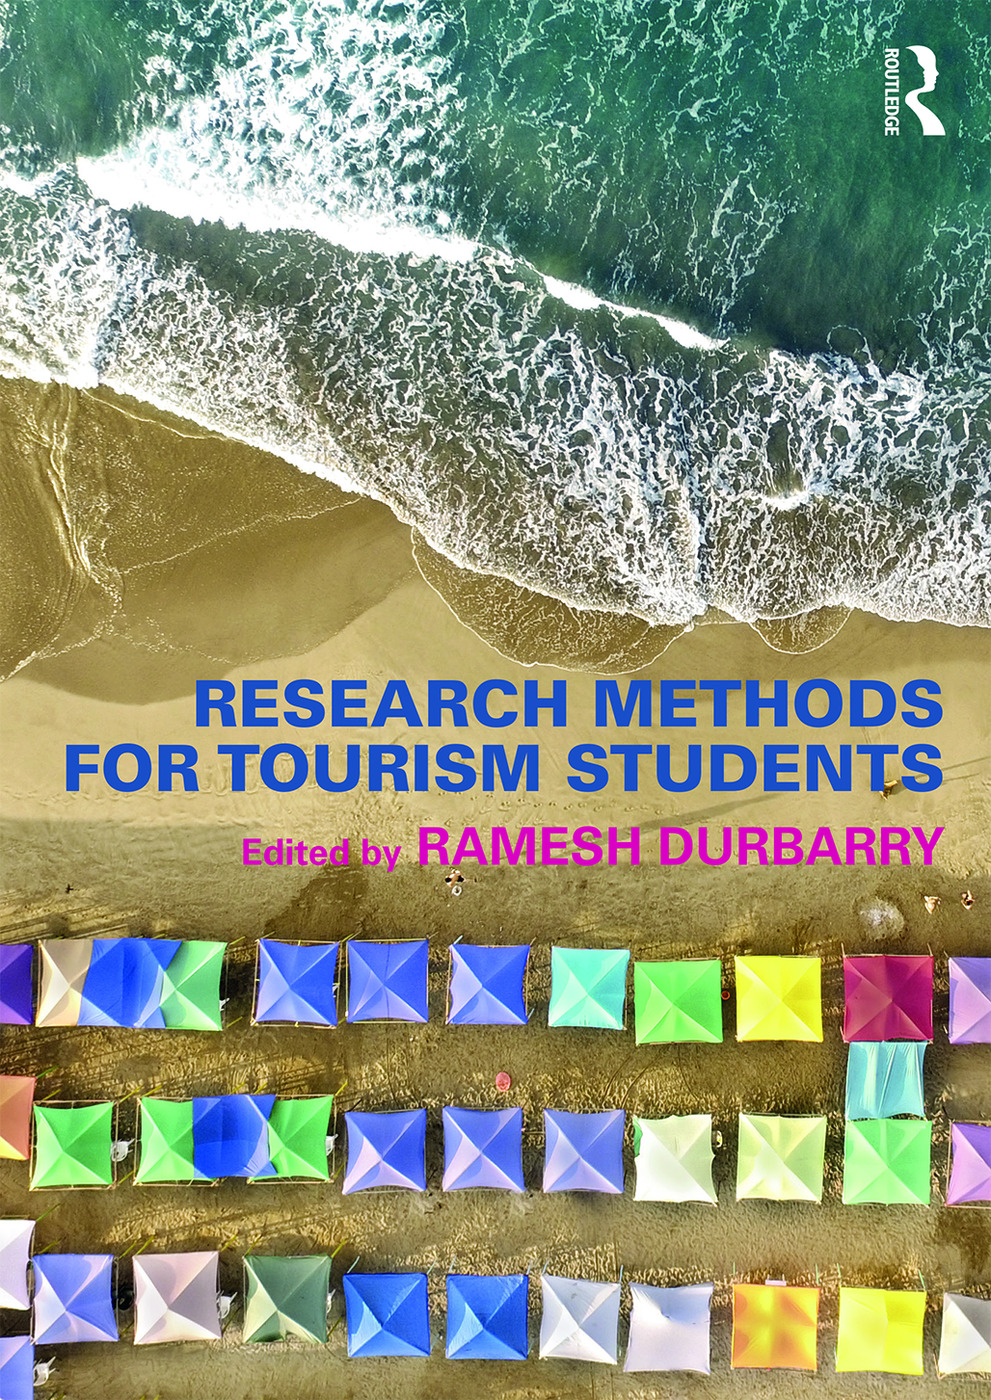 Research Methods for Tourism Students book cover